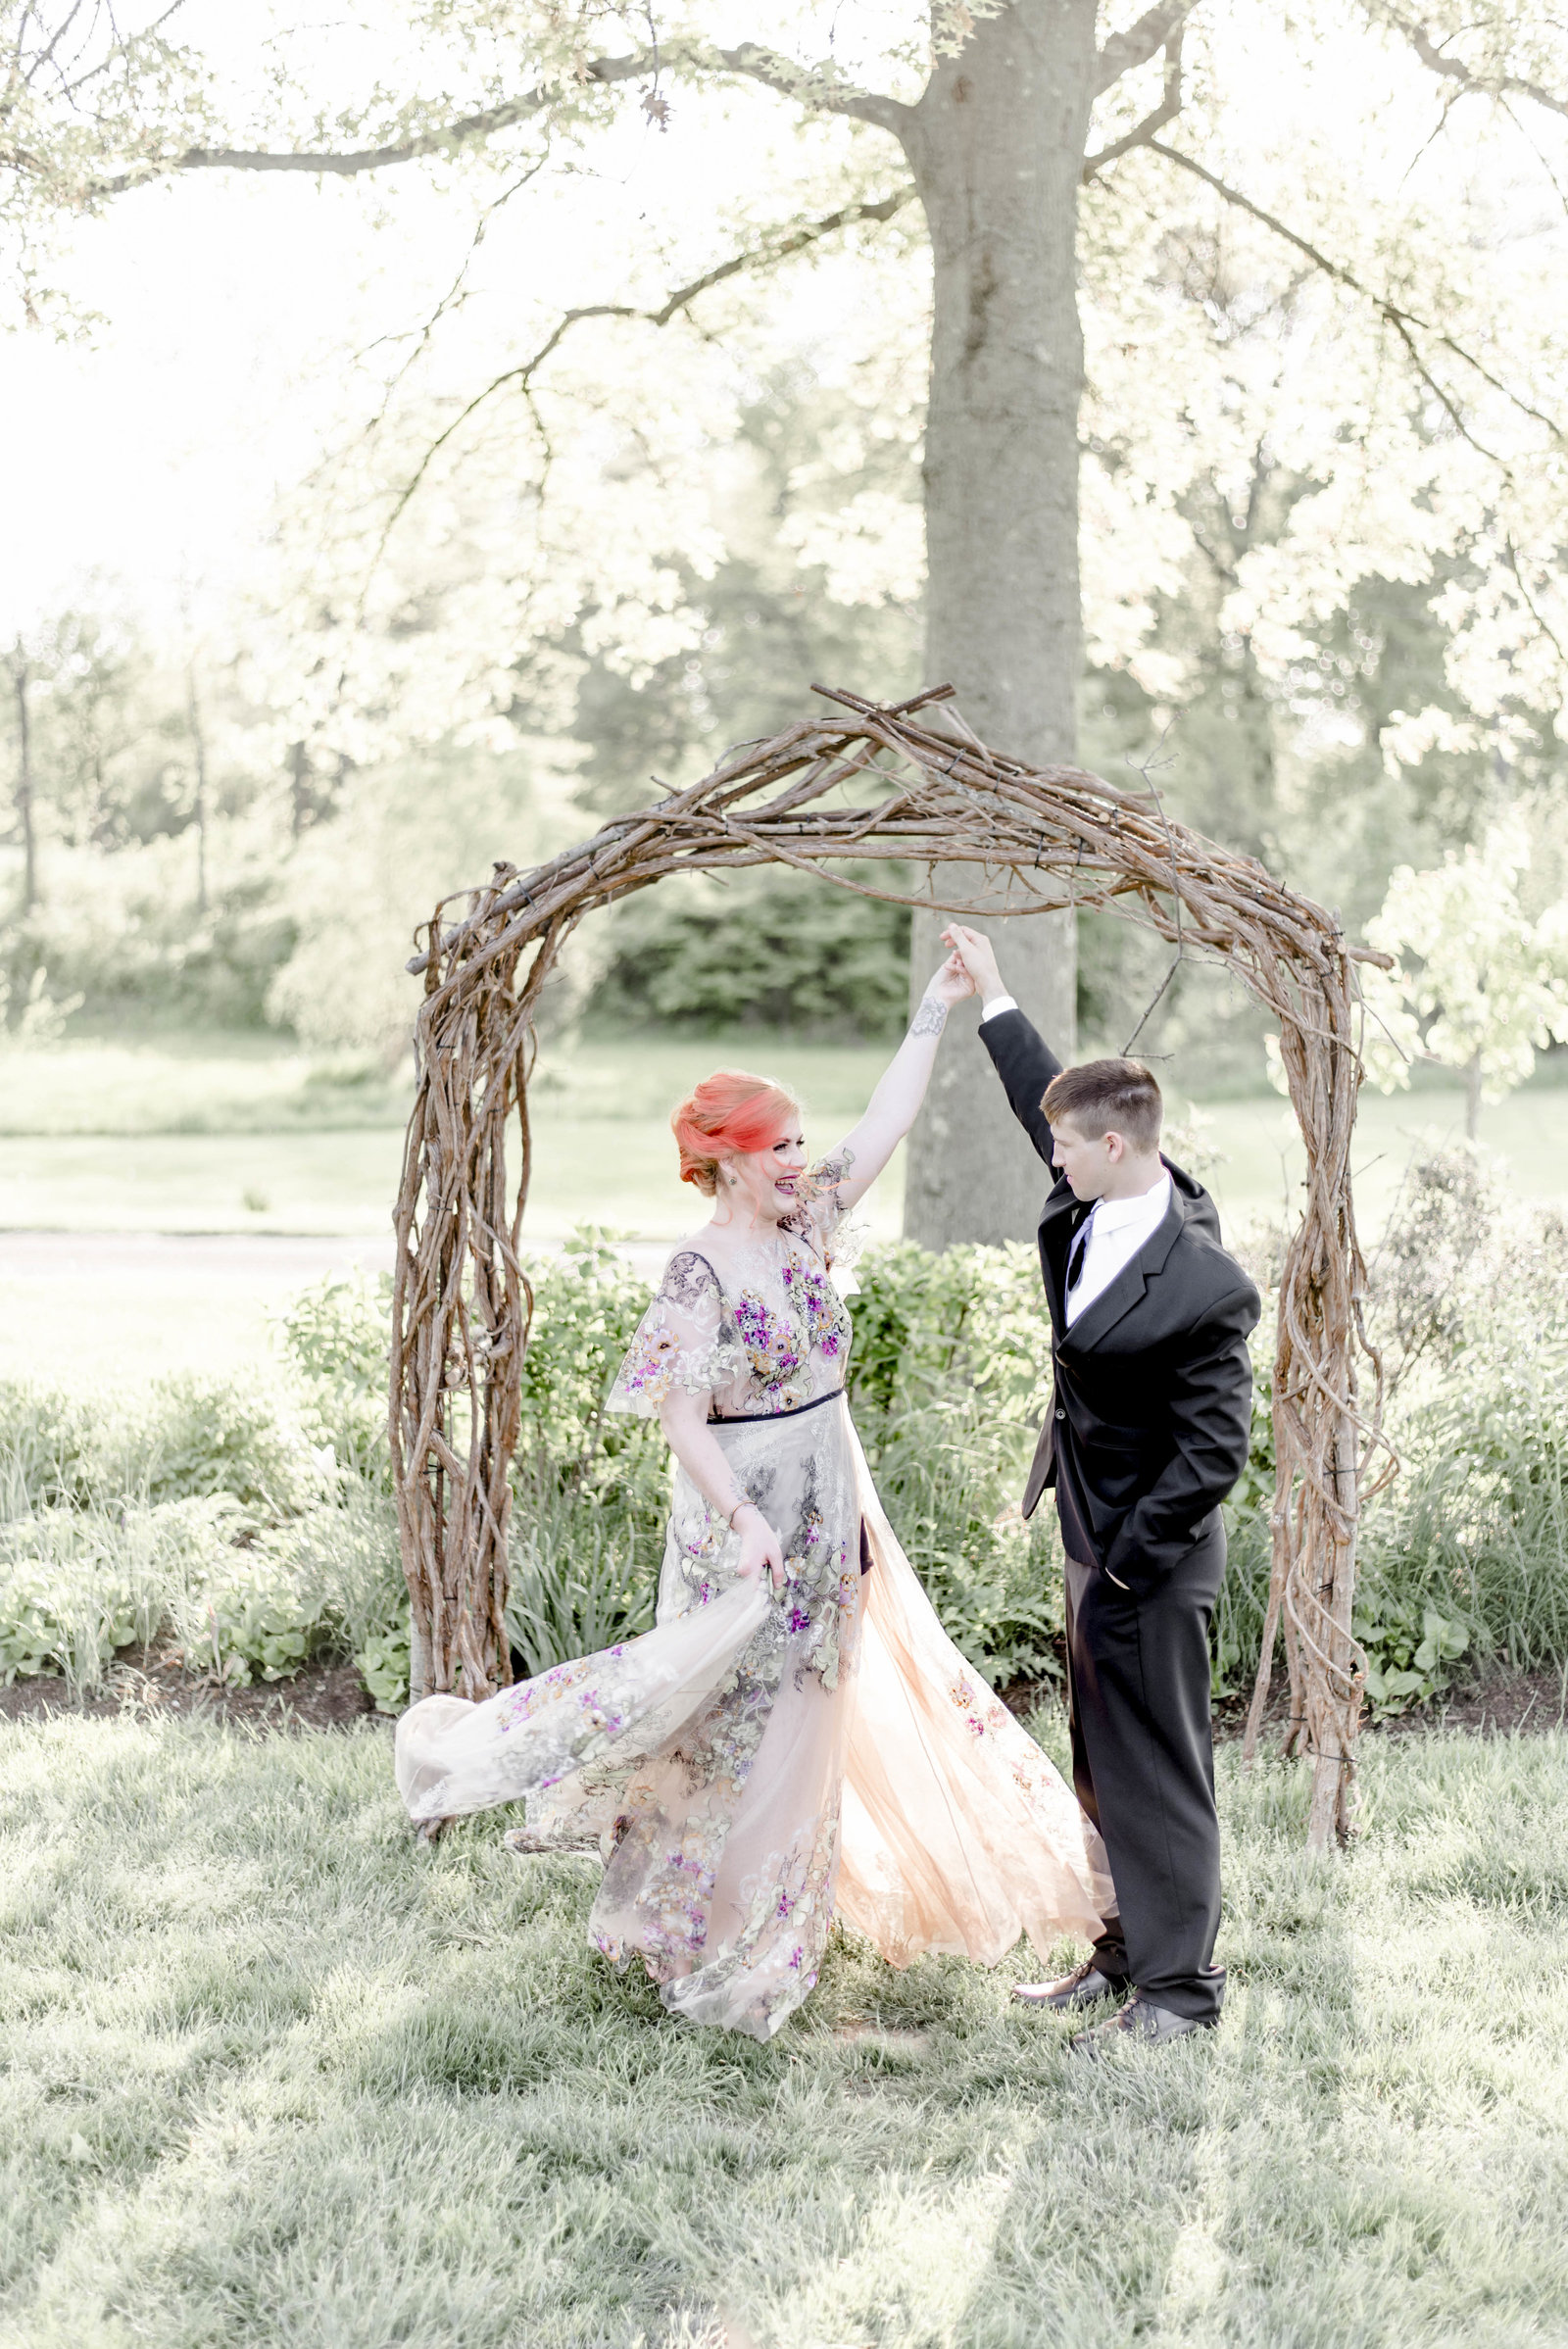 Cassidy_Alane_Photography-Jorgensen_Farm-Ohio_Wedding_Photographer-Lavender_Styled_Shoot-286